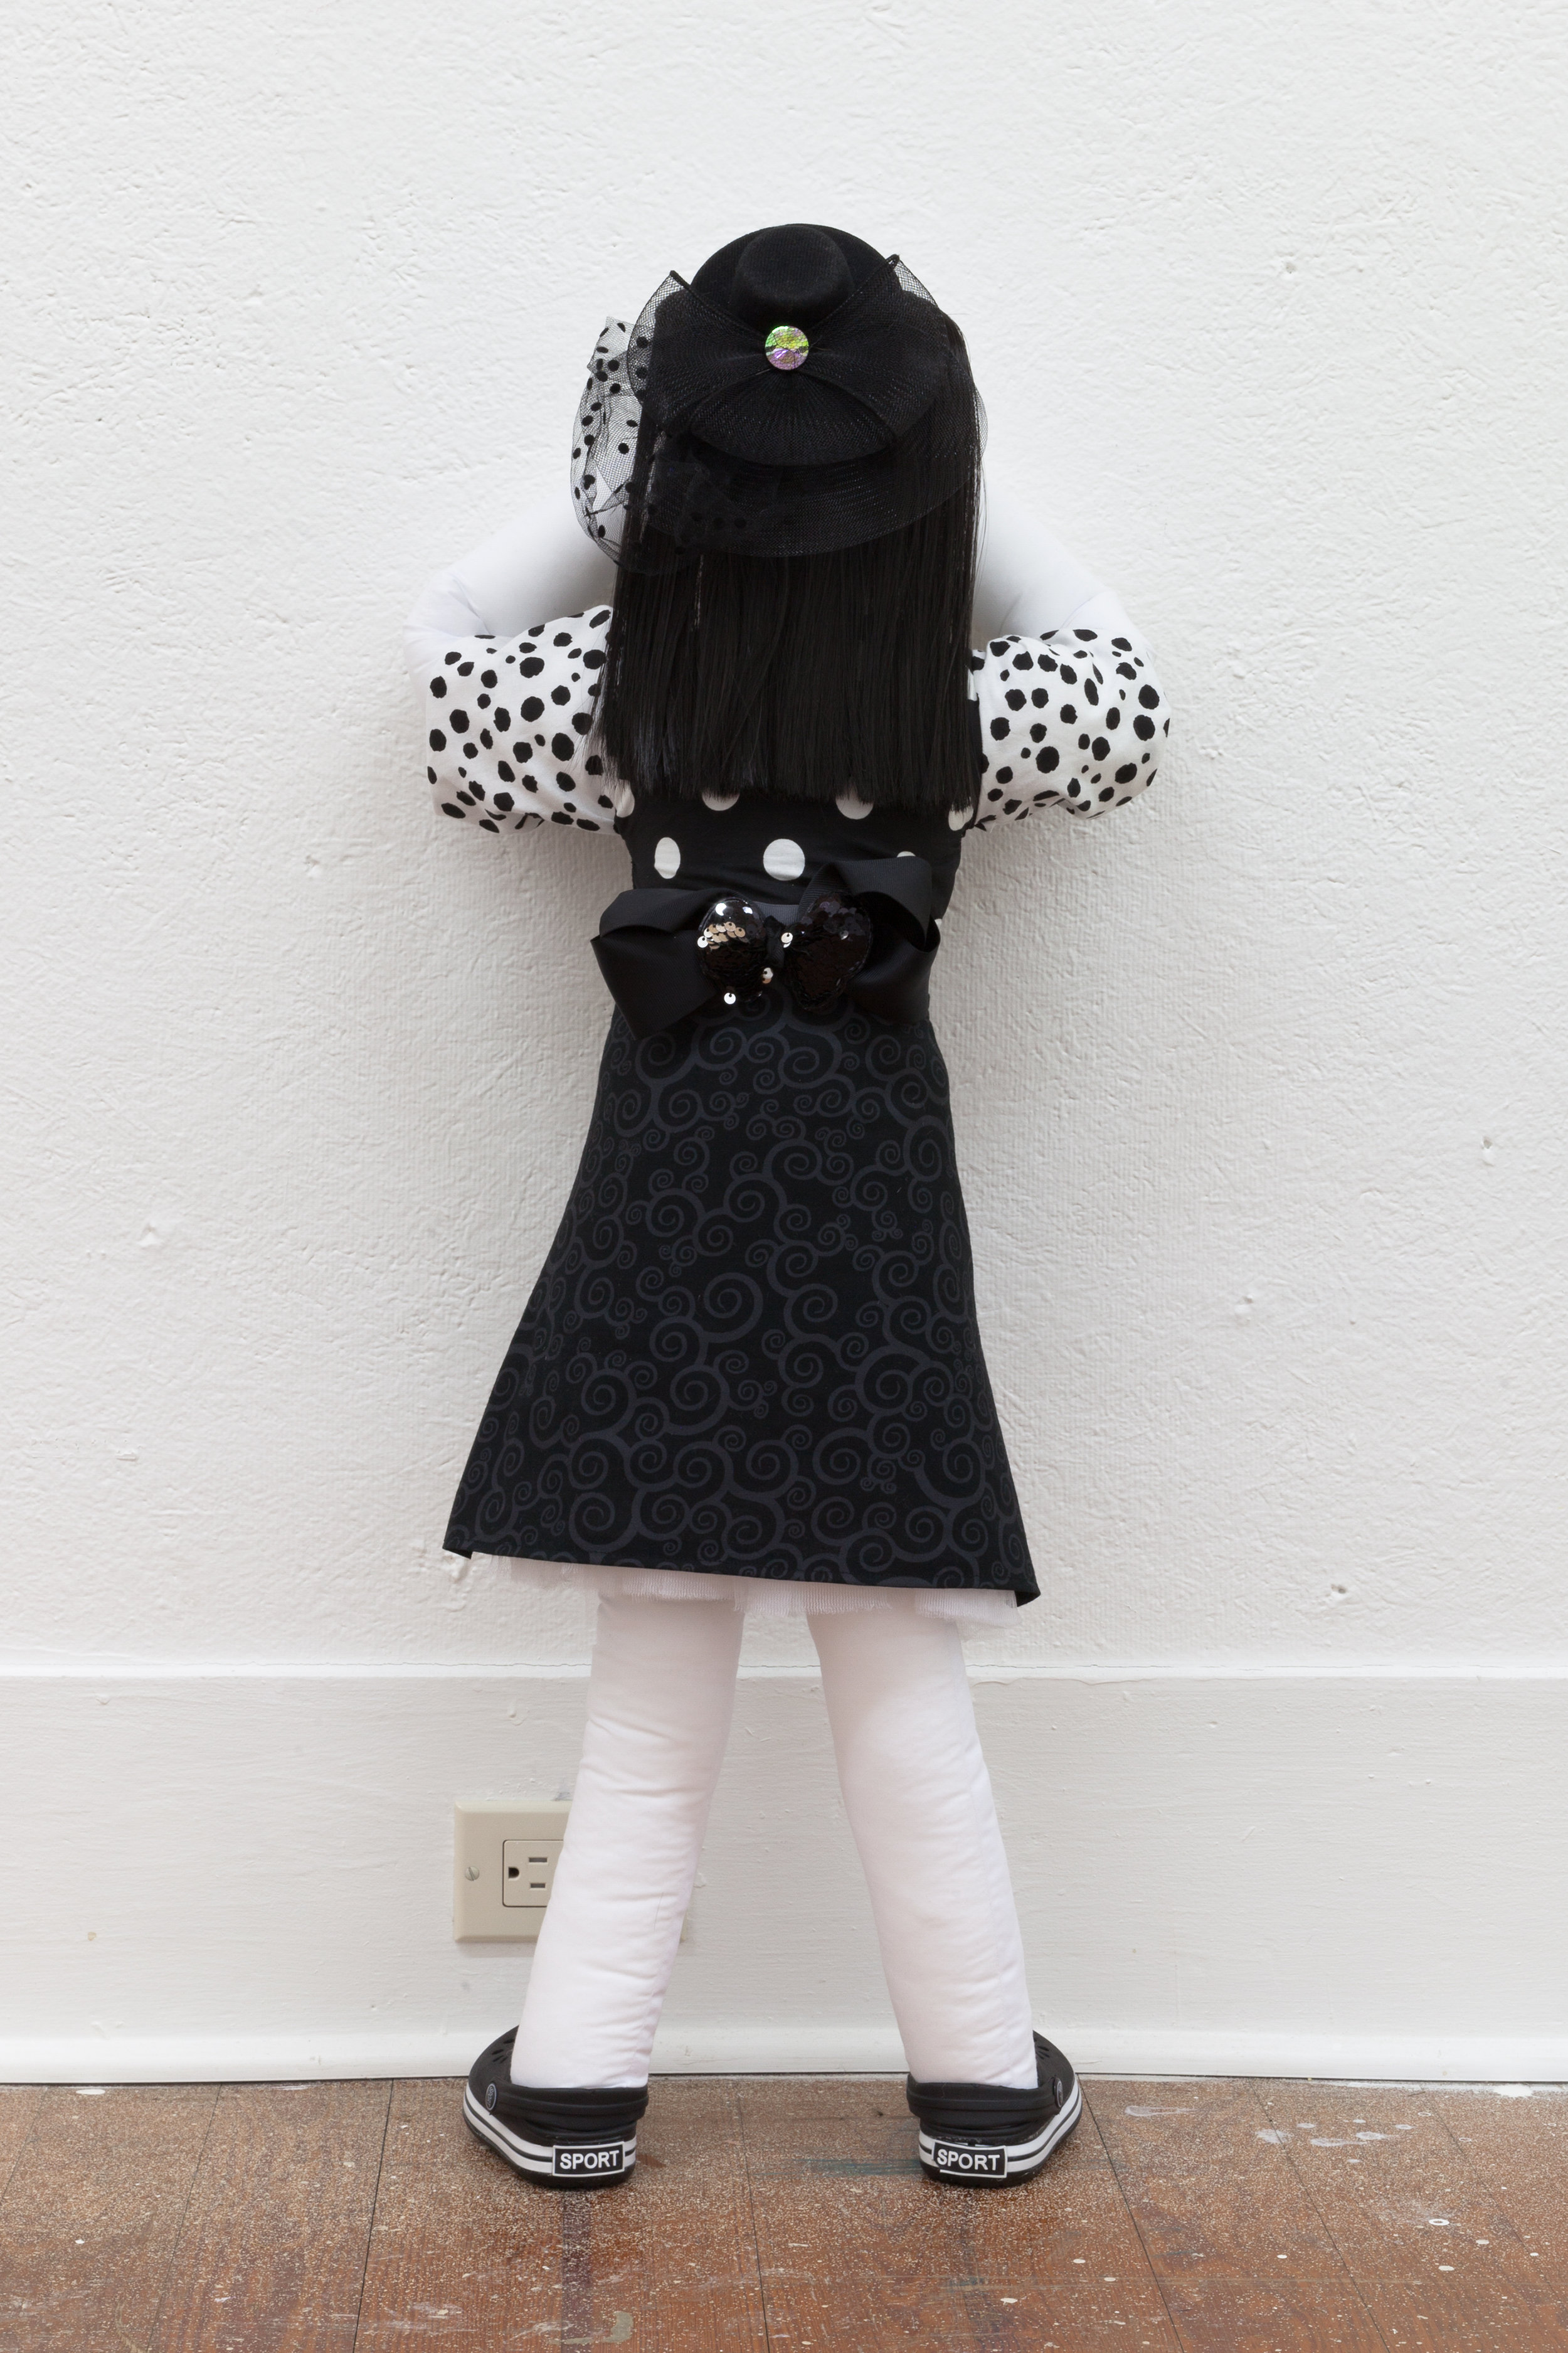 Abby Lloyd, Finoula, 2019, Fabric, Poly-Fil, ribbon, hair extensions, found materials Approximately 36 x 14 inches